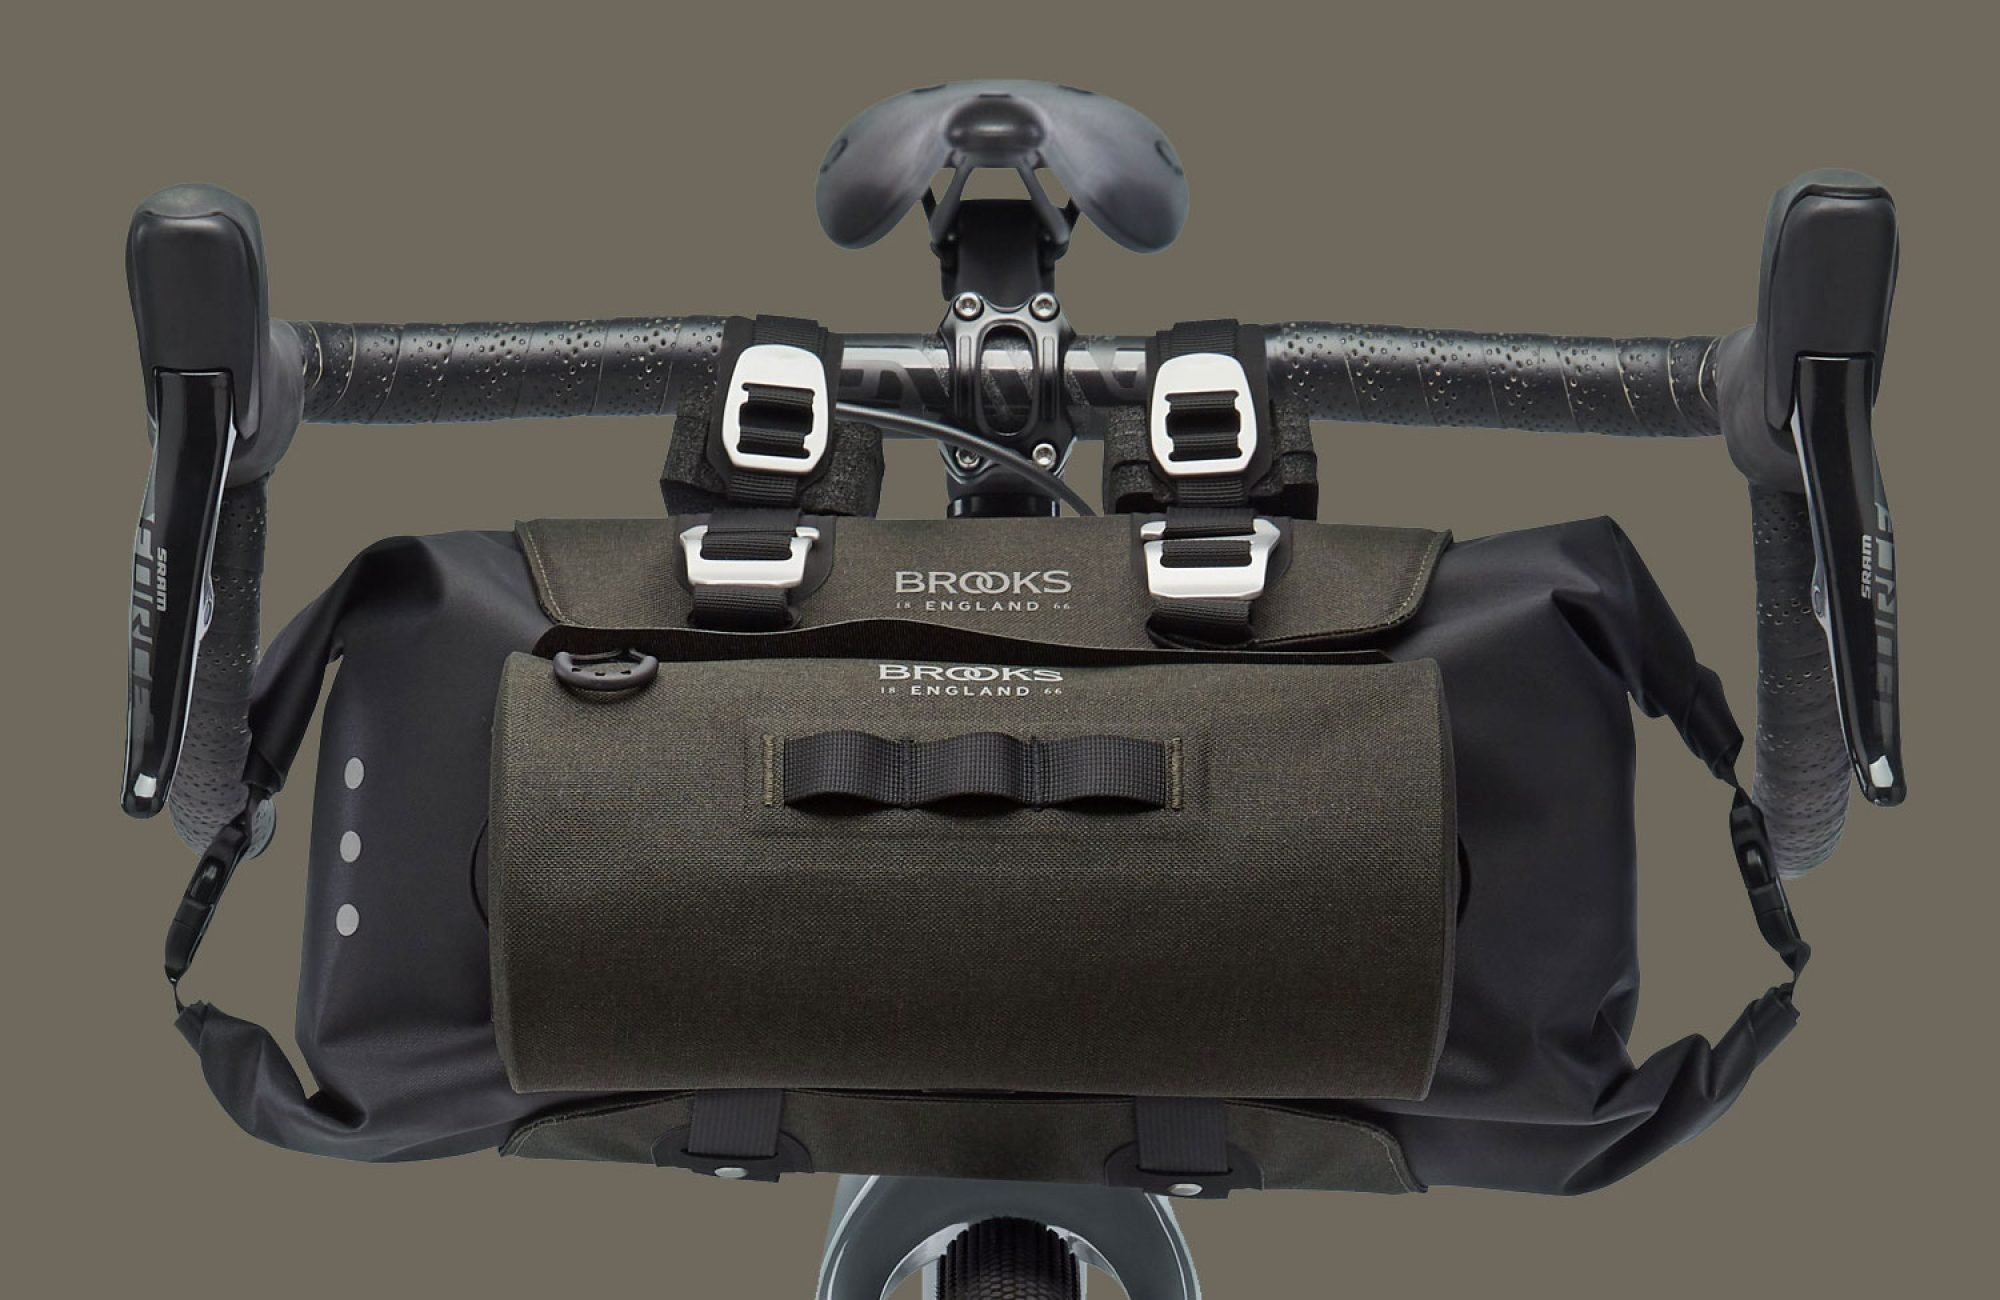 Brooks-Scape-Bikepacking-Cycle-Bags-Collection-2021